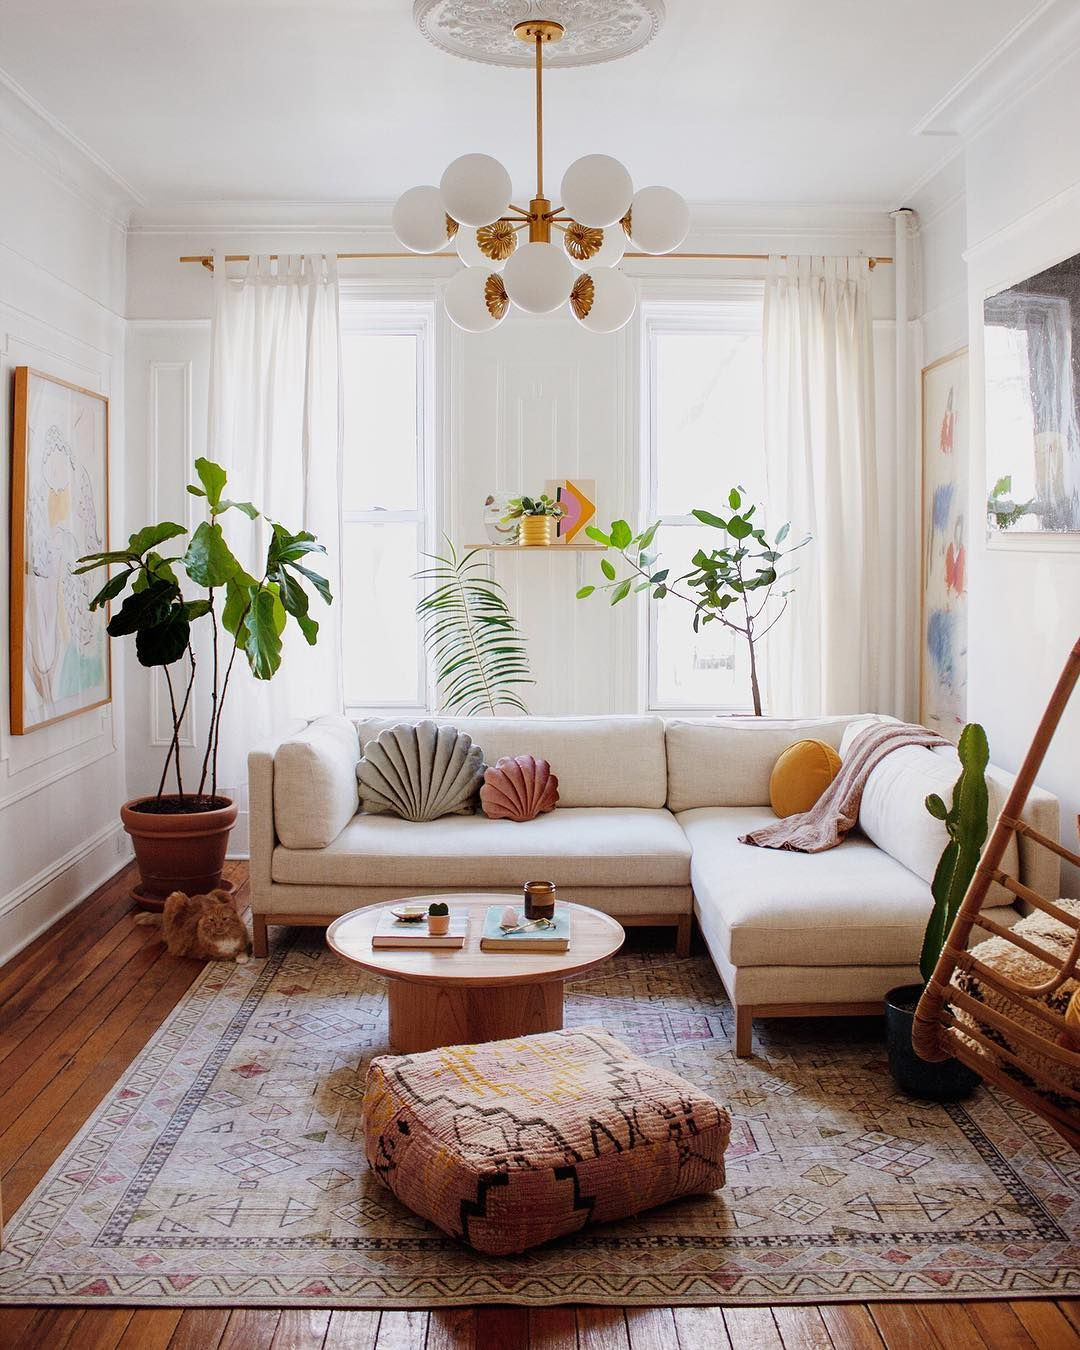 Mallory reserve home on instagram  cfriends  hope you  ll forgive me for all of the living room spam to be fair couldn  possibly done sharing new also best nice and snug images in bedroom ideas decor rh pinterest